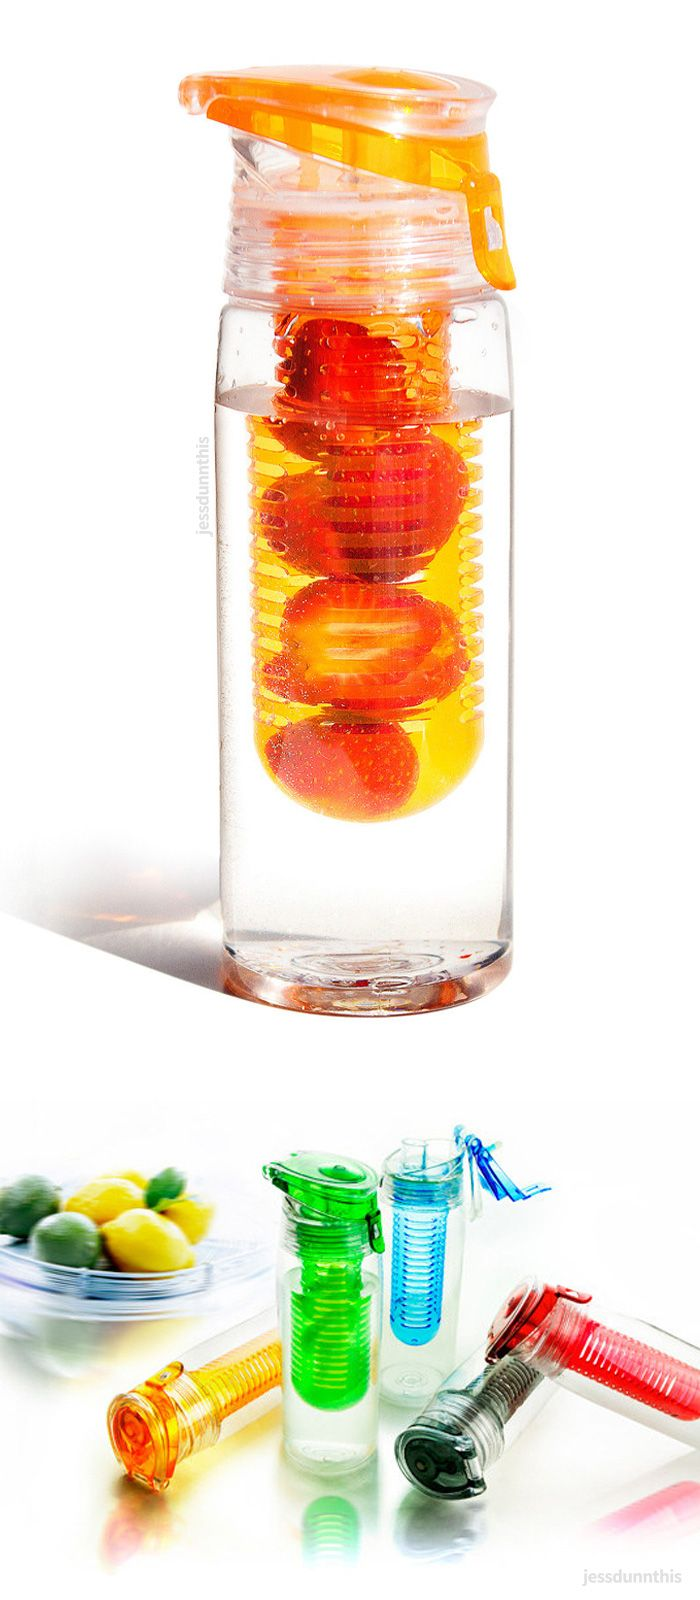 Fruit infusing water bottle - fill with berries or citrus etc for a healthy infused drink! #product_design